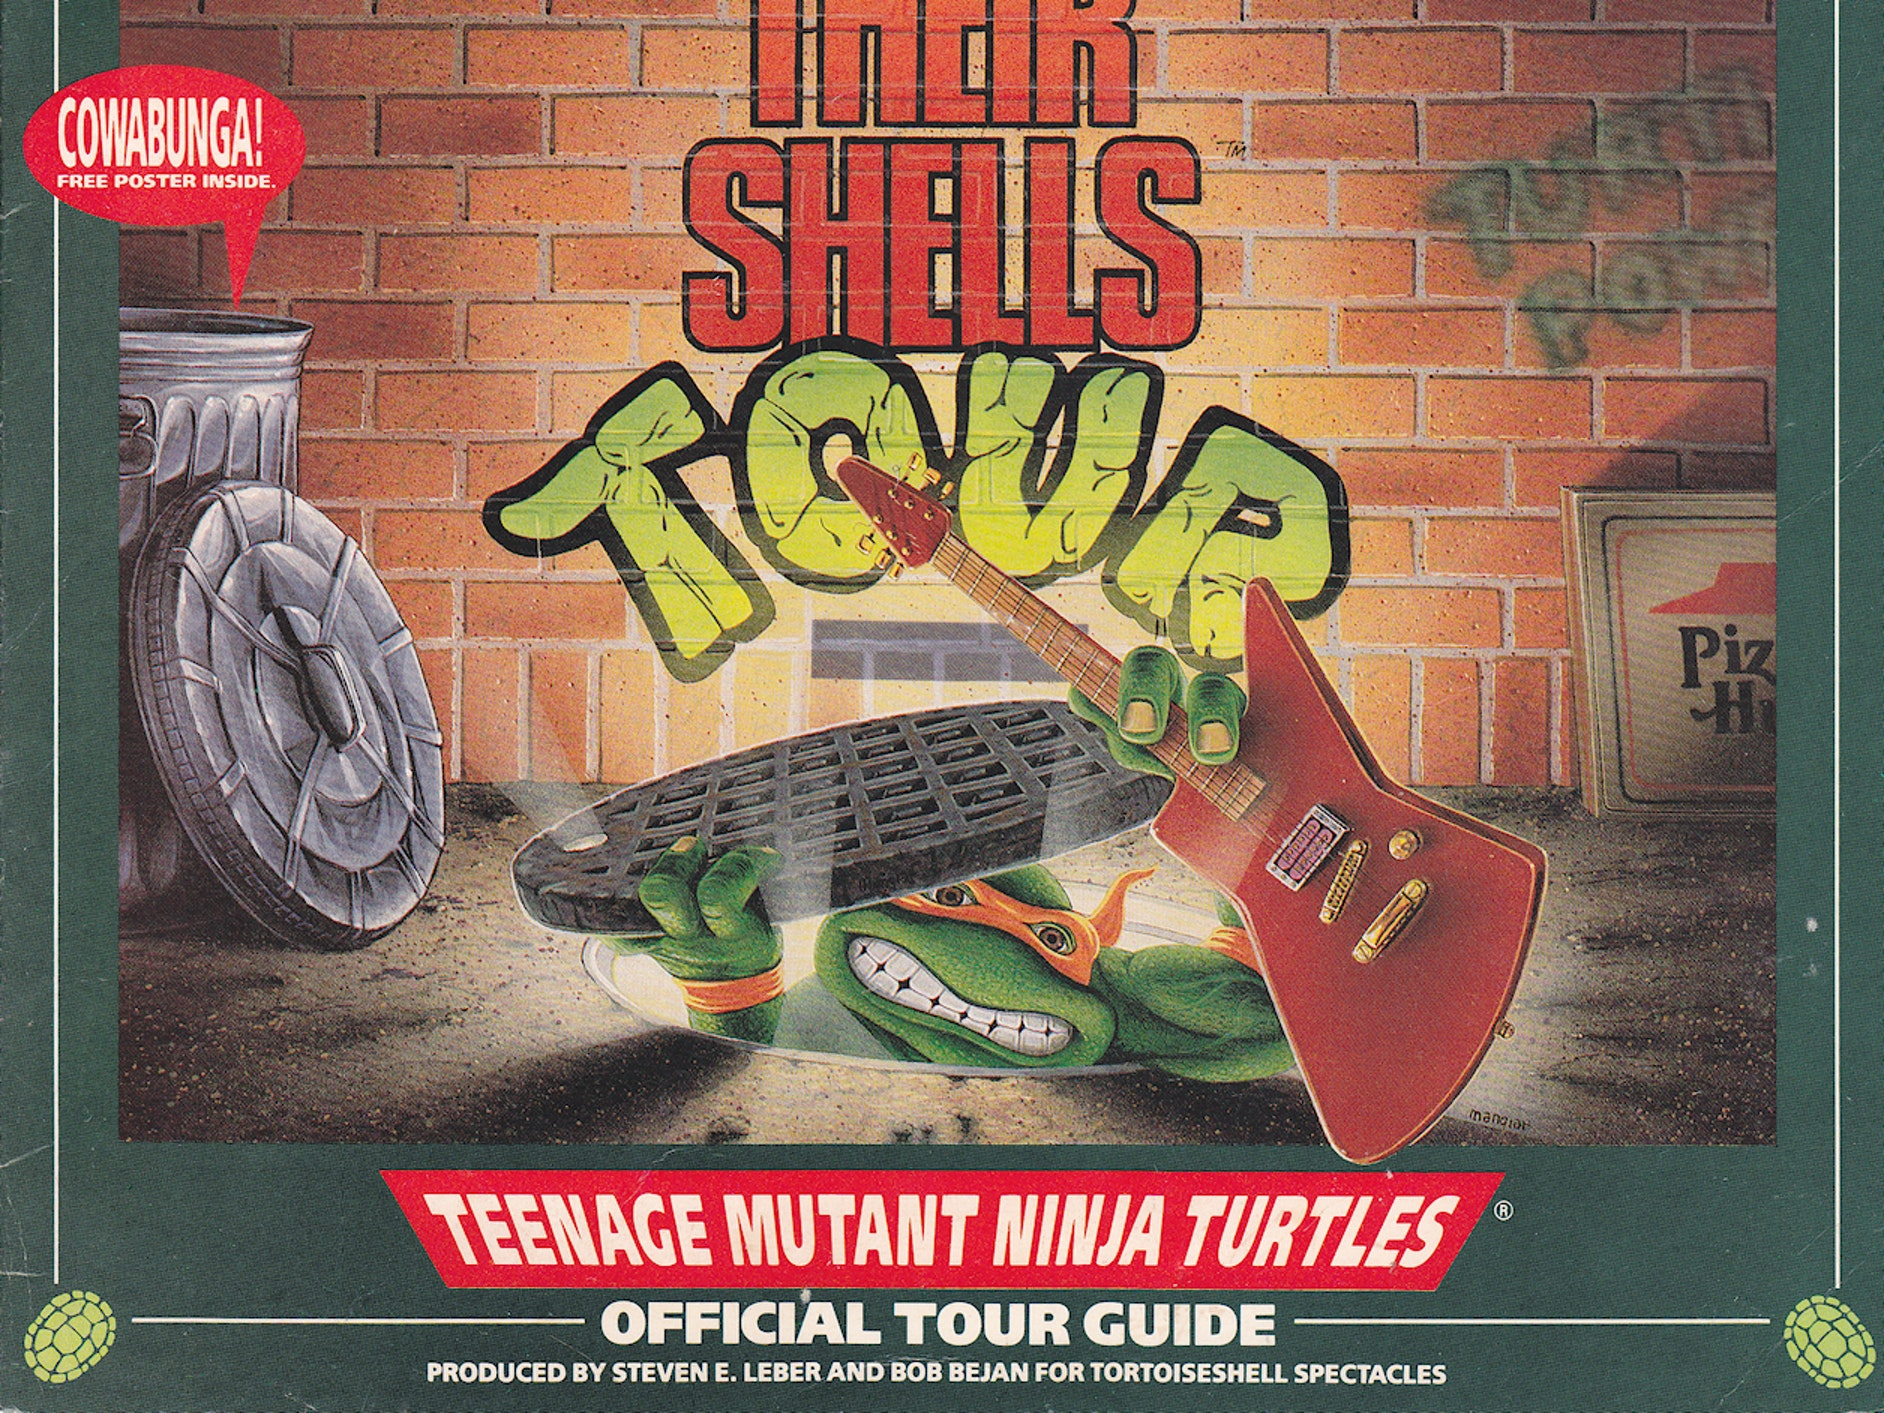 Coming Out of Their Shells Tour